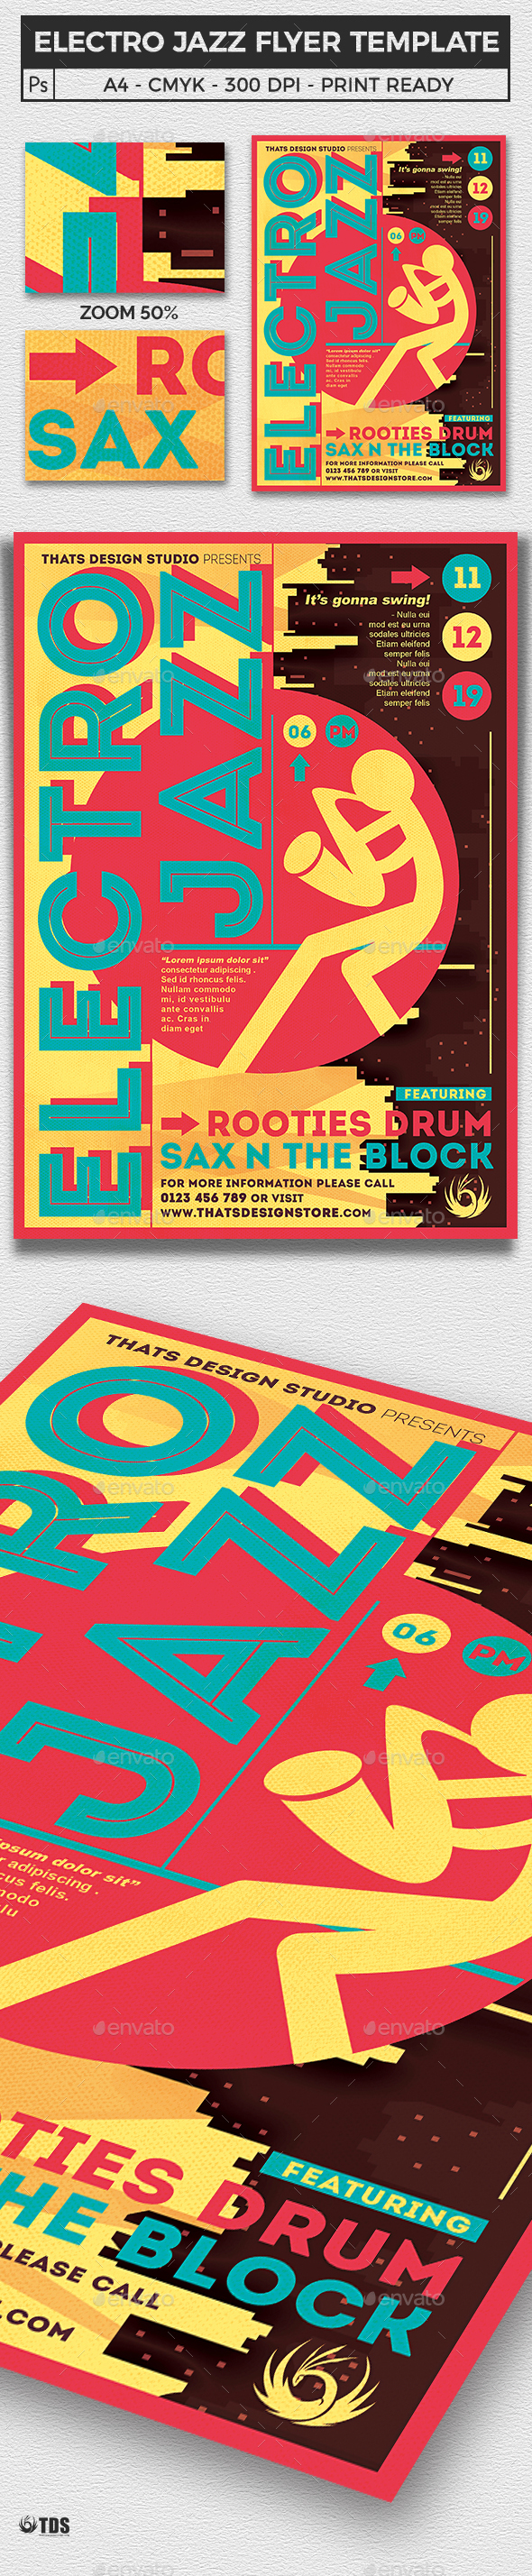 Electro Jazz Flyer Template - Concerts Events